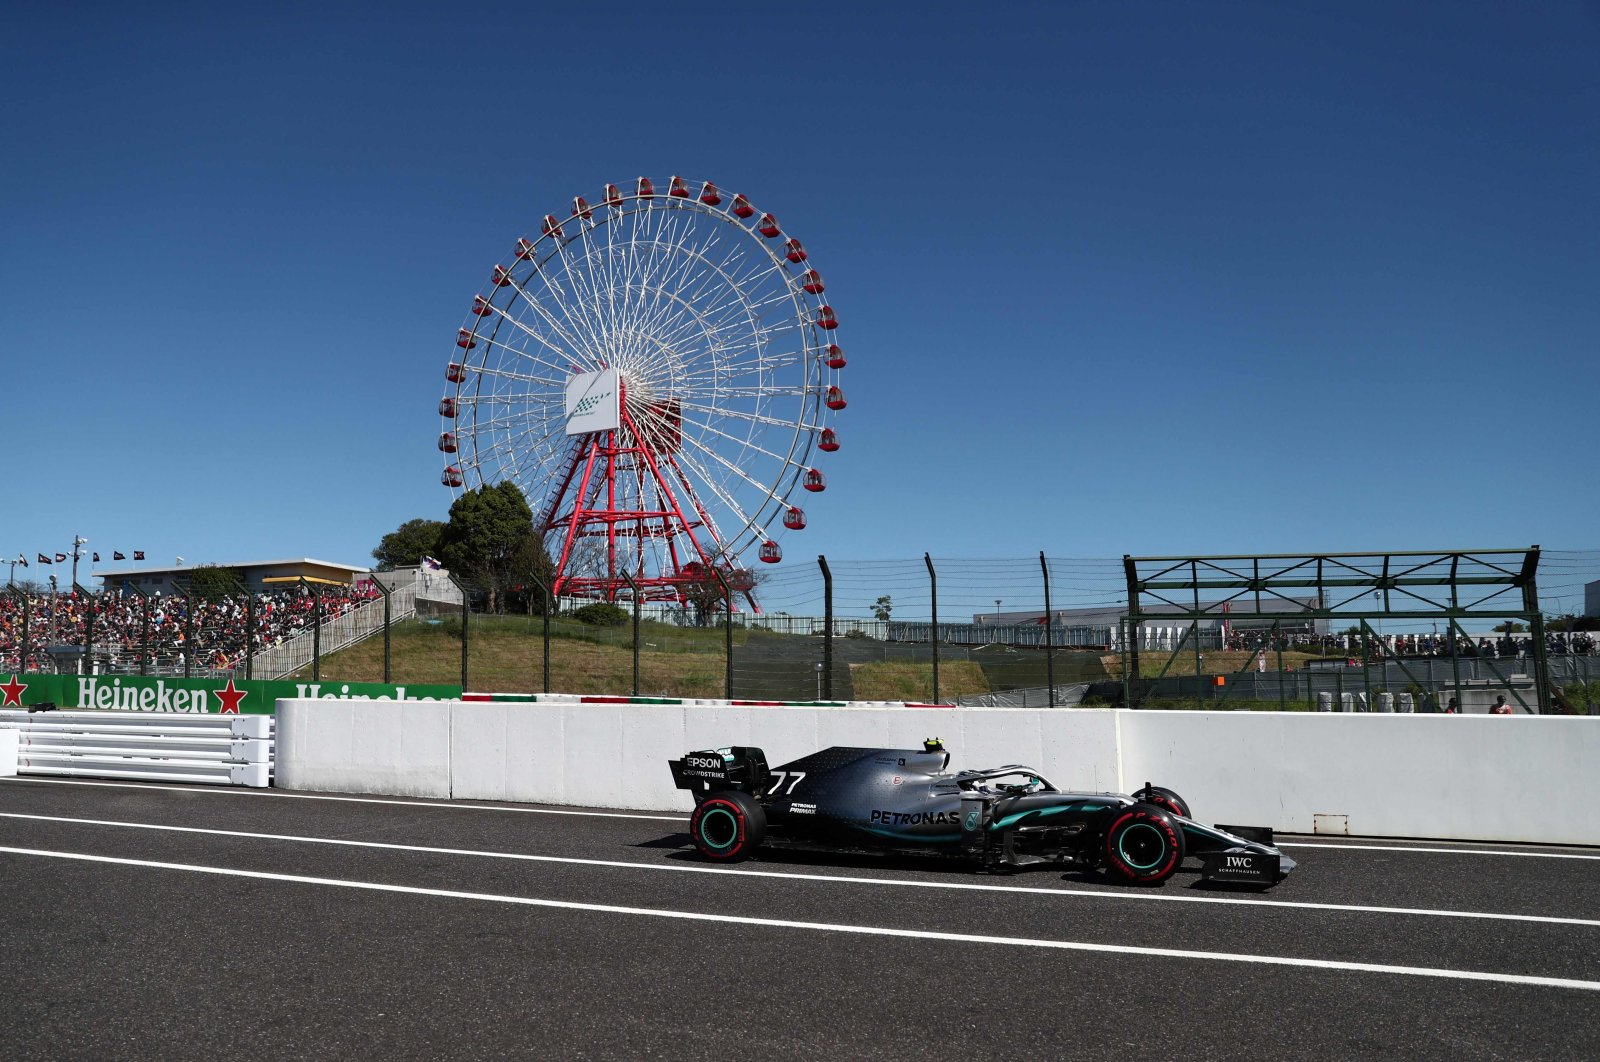 Mercedes' Finnish driver Valtteri Bottas returns to the pits during the Formula One Japanese Grand Prix at Suzuka, Japan, Oct. 13, 2019. (AFP Photo)